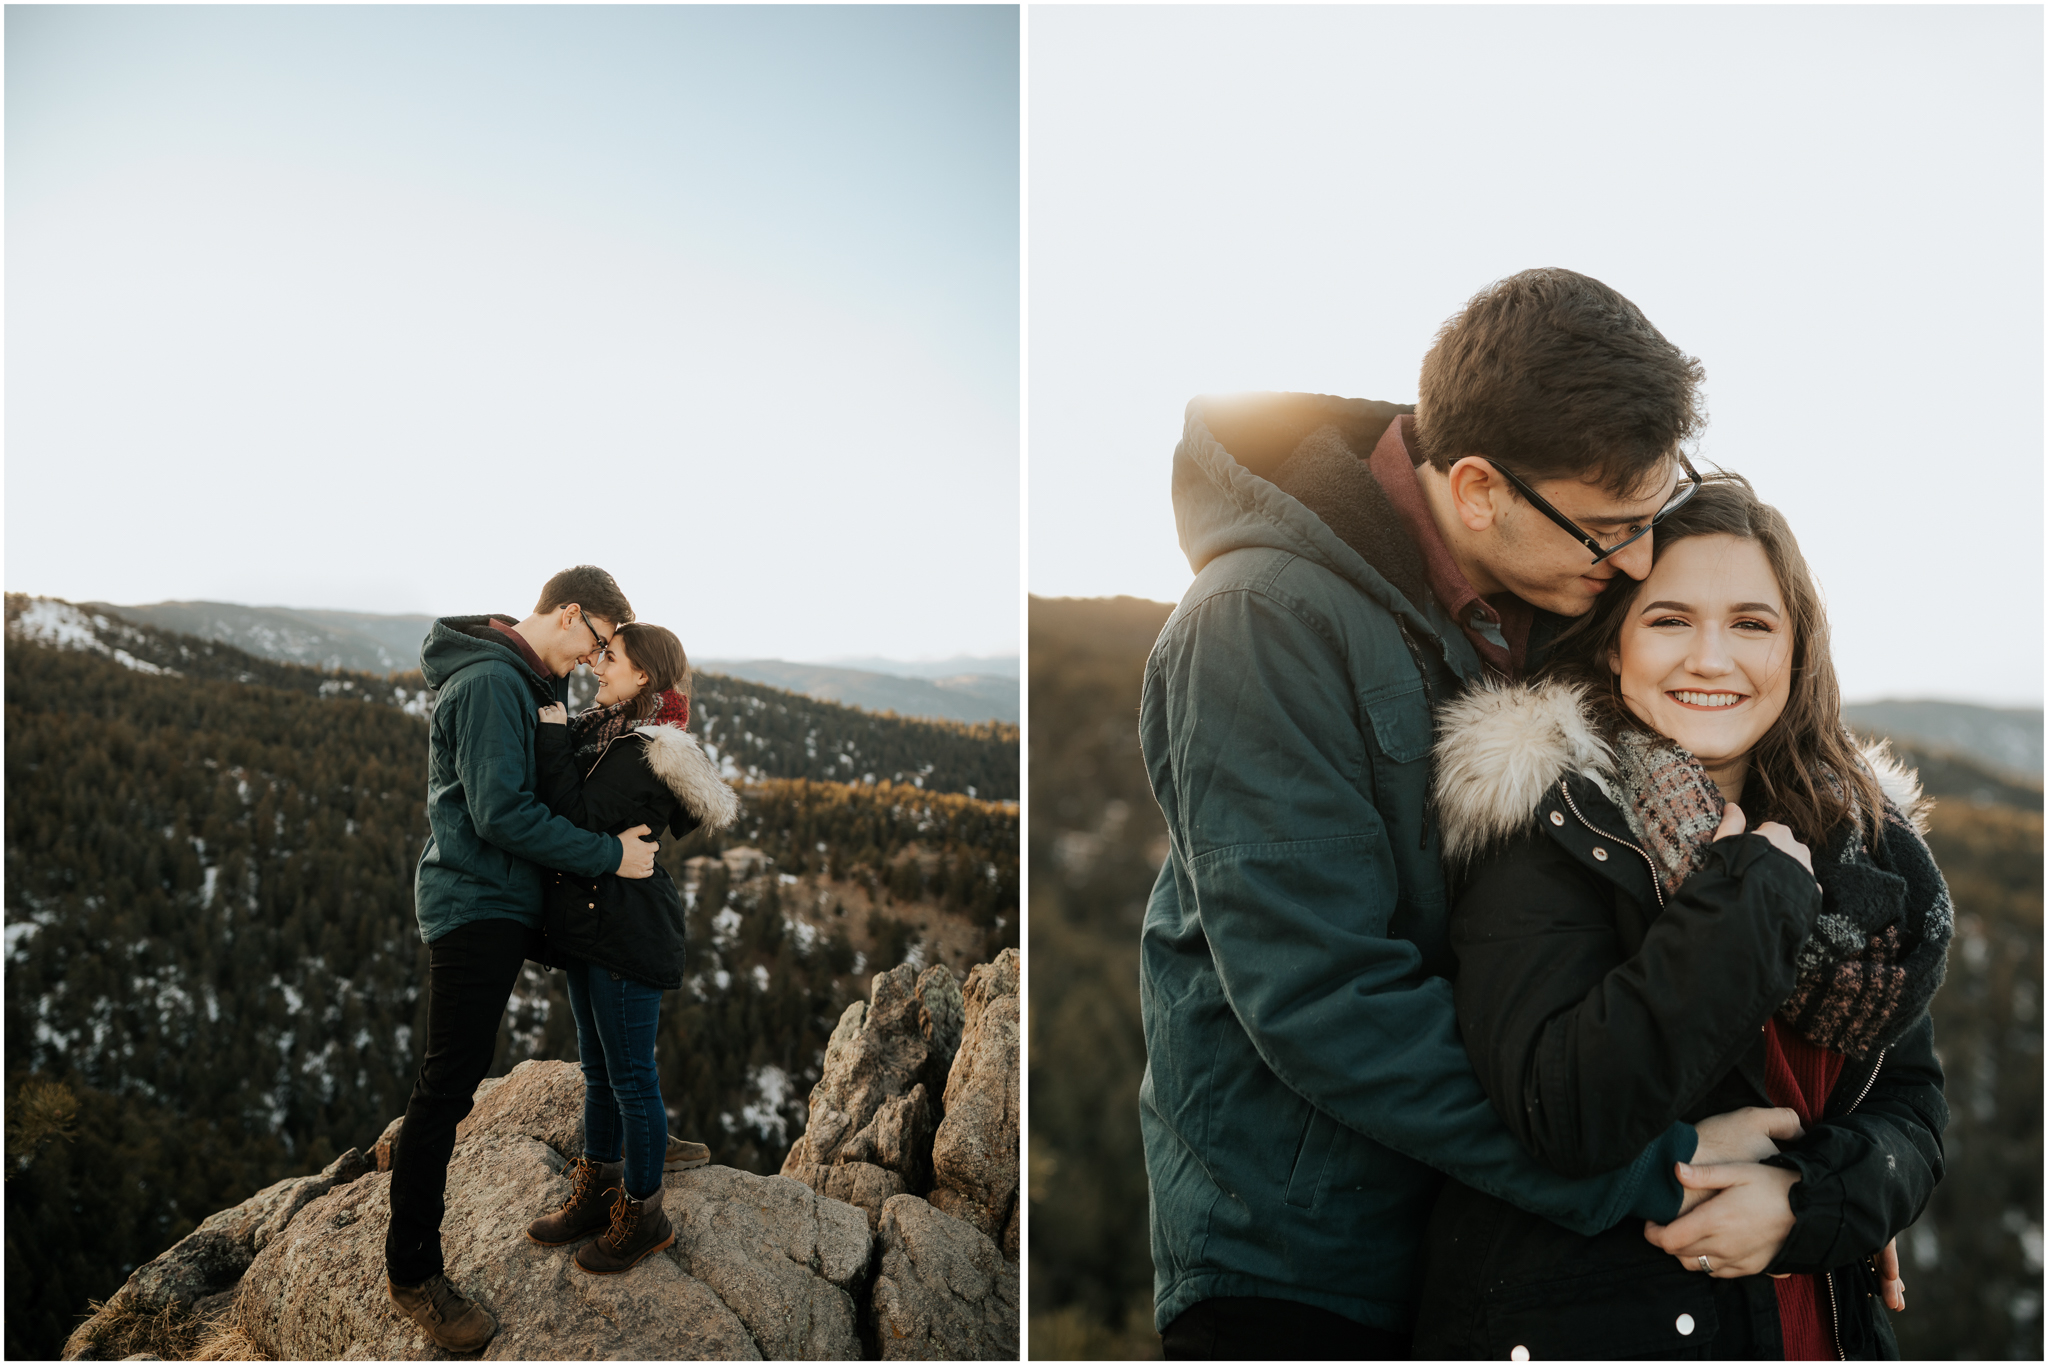 Leah Nicole Photography - Houston Wedding Photographer-Colorado Mountaintop Engagement Session- Houston Wedding Photographer -Kristen Giles Photography-1.jpg